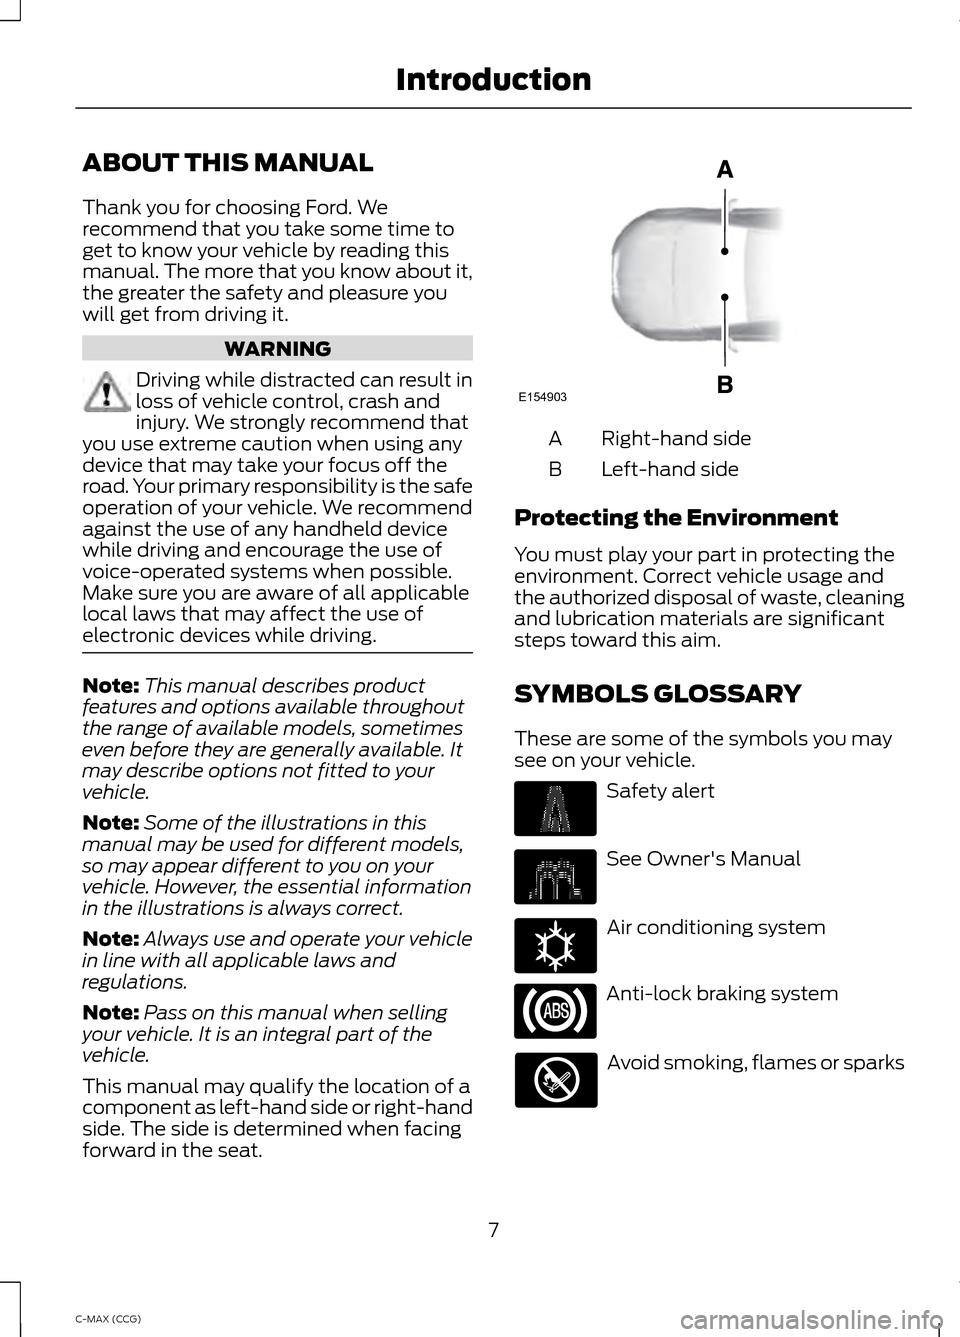 FORD C MAX HYBRID 2014 2.G Owners Manual, Page 9